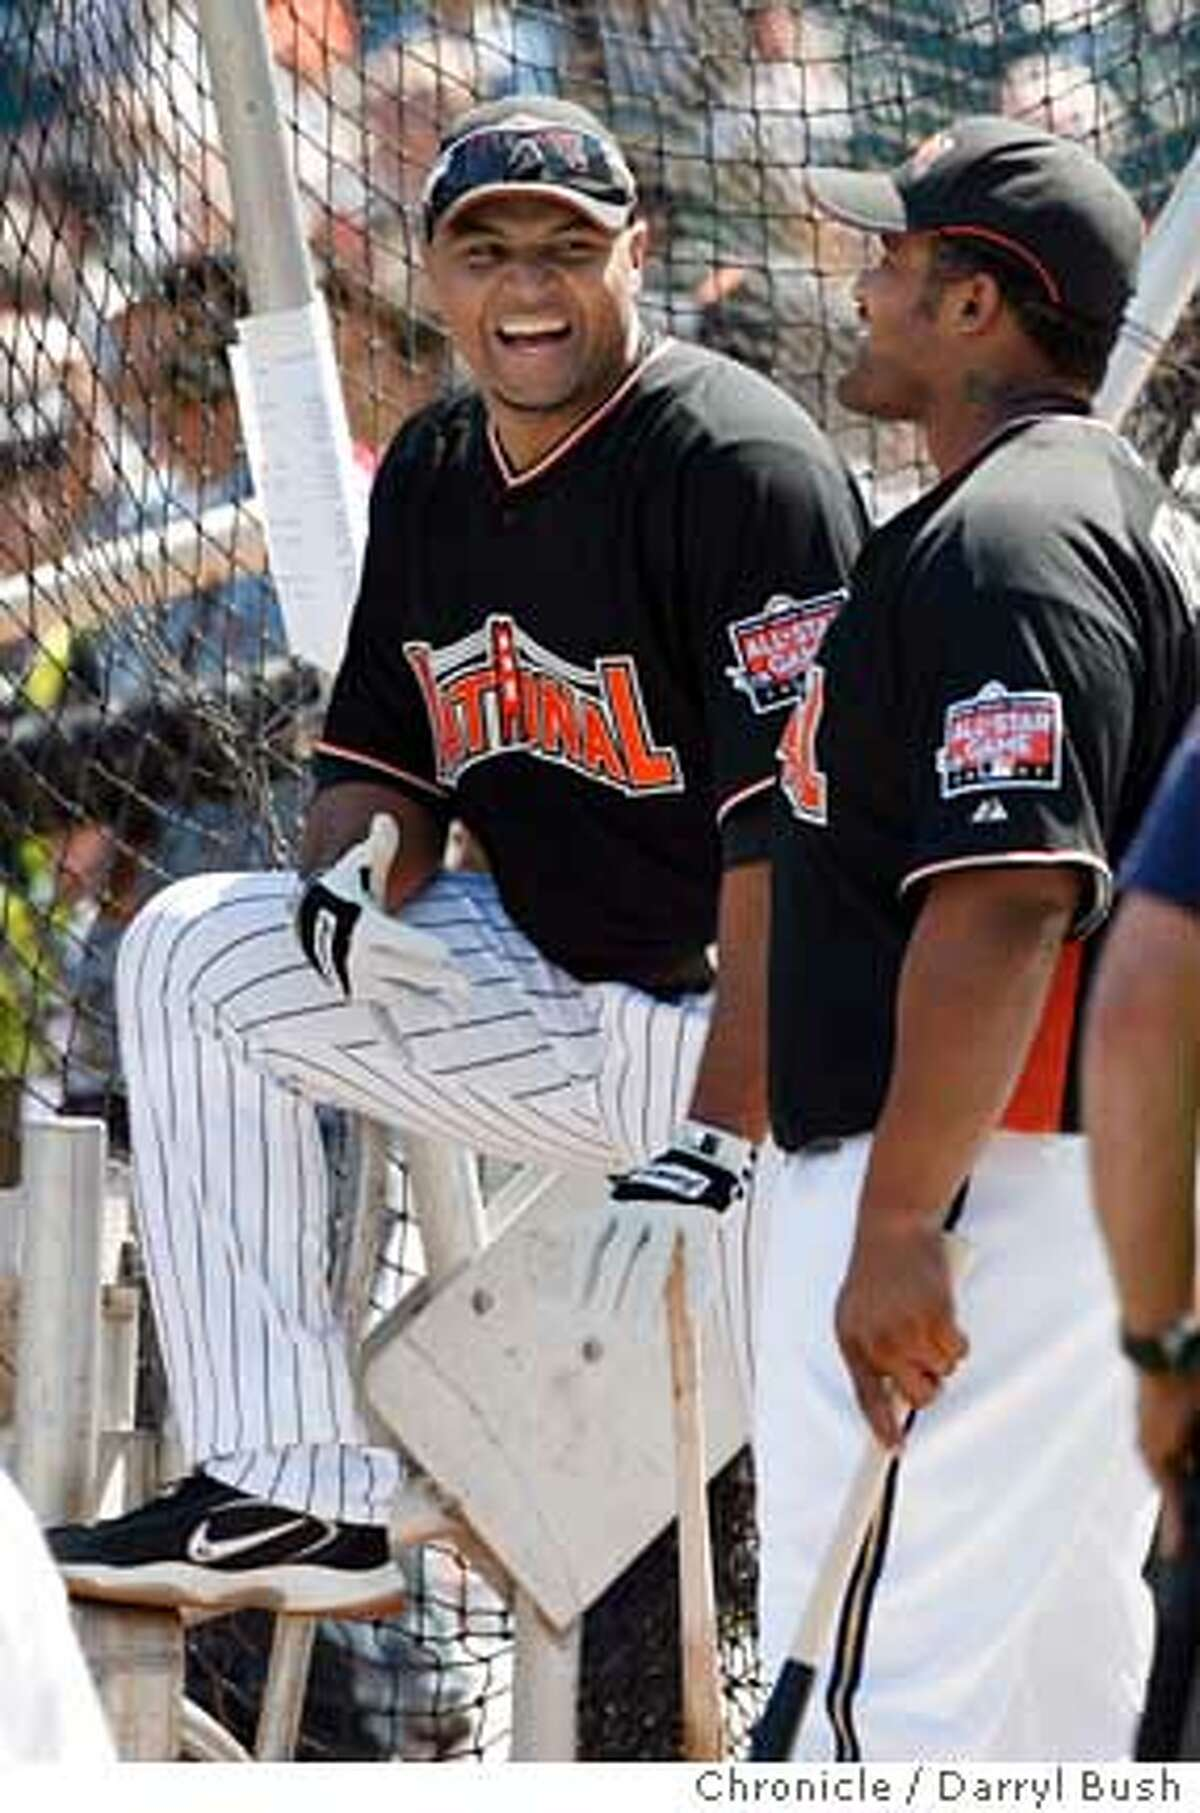 allstar_homerun_0003_db.JPG National League's Carlos Lee and Prince Fielder, right, share a laugh during National League Team's batting practice in preparation for Tuesday's All-Star Game, before the Home Run Derby at AT&T Park in San Francisco, CA, on Monday, July, 9, 2007. photo taken: 7/9/07 Darryl Bush / The Chronicle ** (cq) Ran on: 07-10-2007 NL manager Tony La Russa and AL manager Jim Leyland dont seem to be worried about being competitive. Ran on: 07-10-2007 NL manager Tony La Russa and AL manager Jim Leyland dont seem to be worried about being competitive.